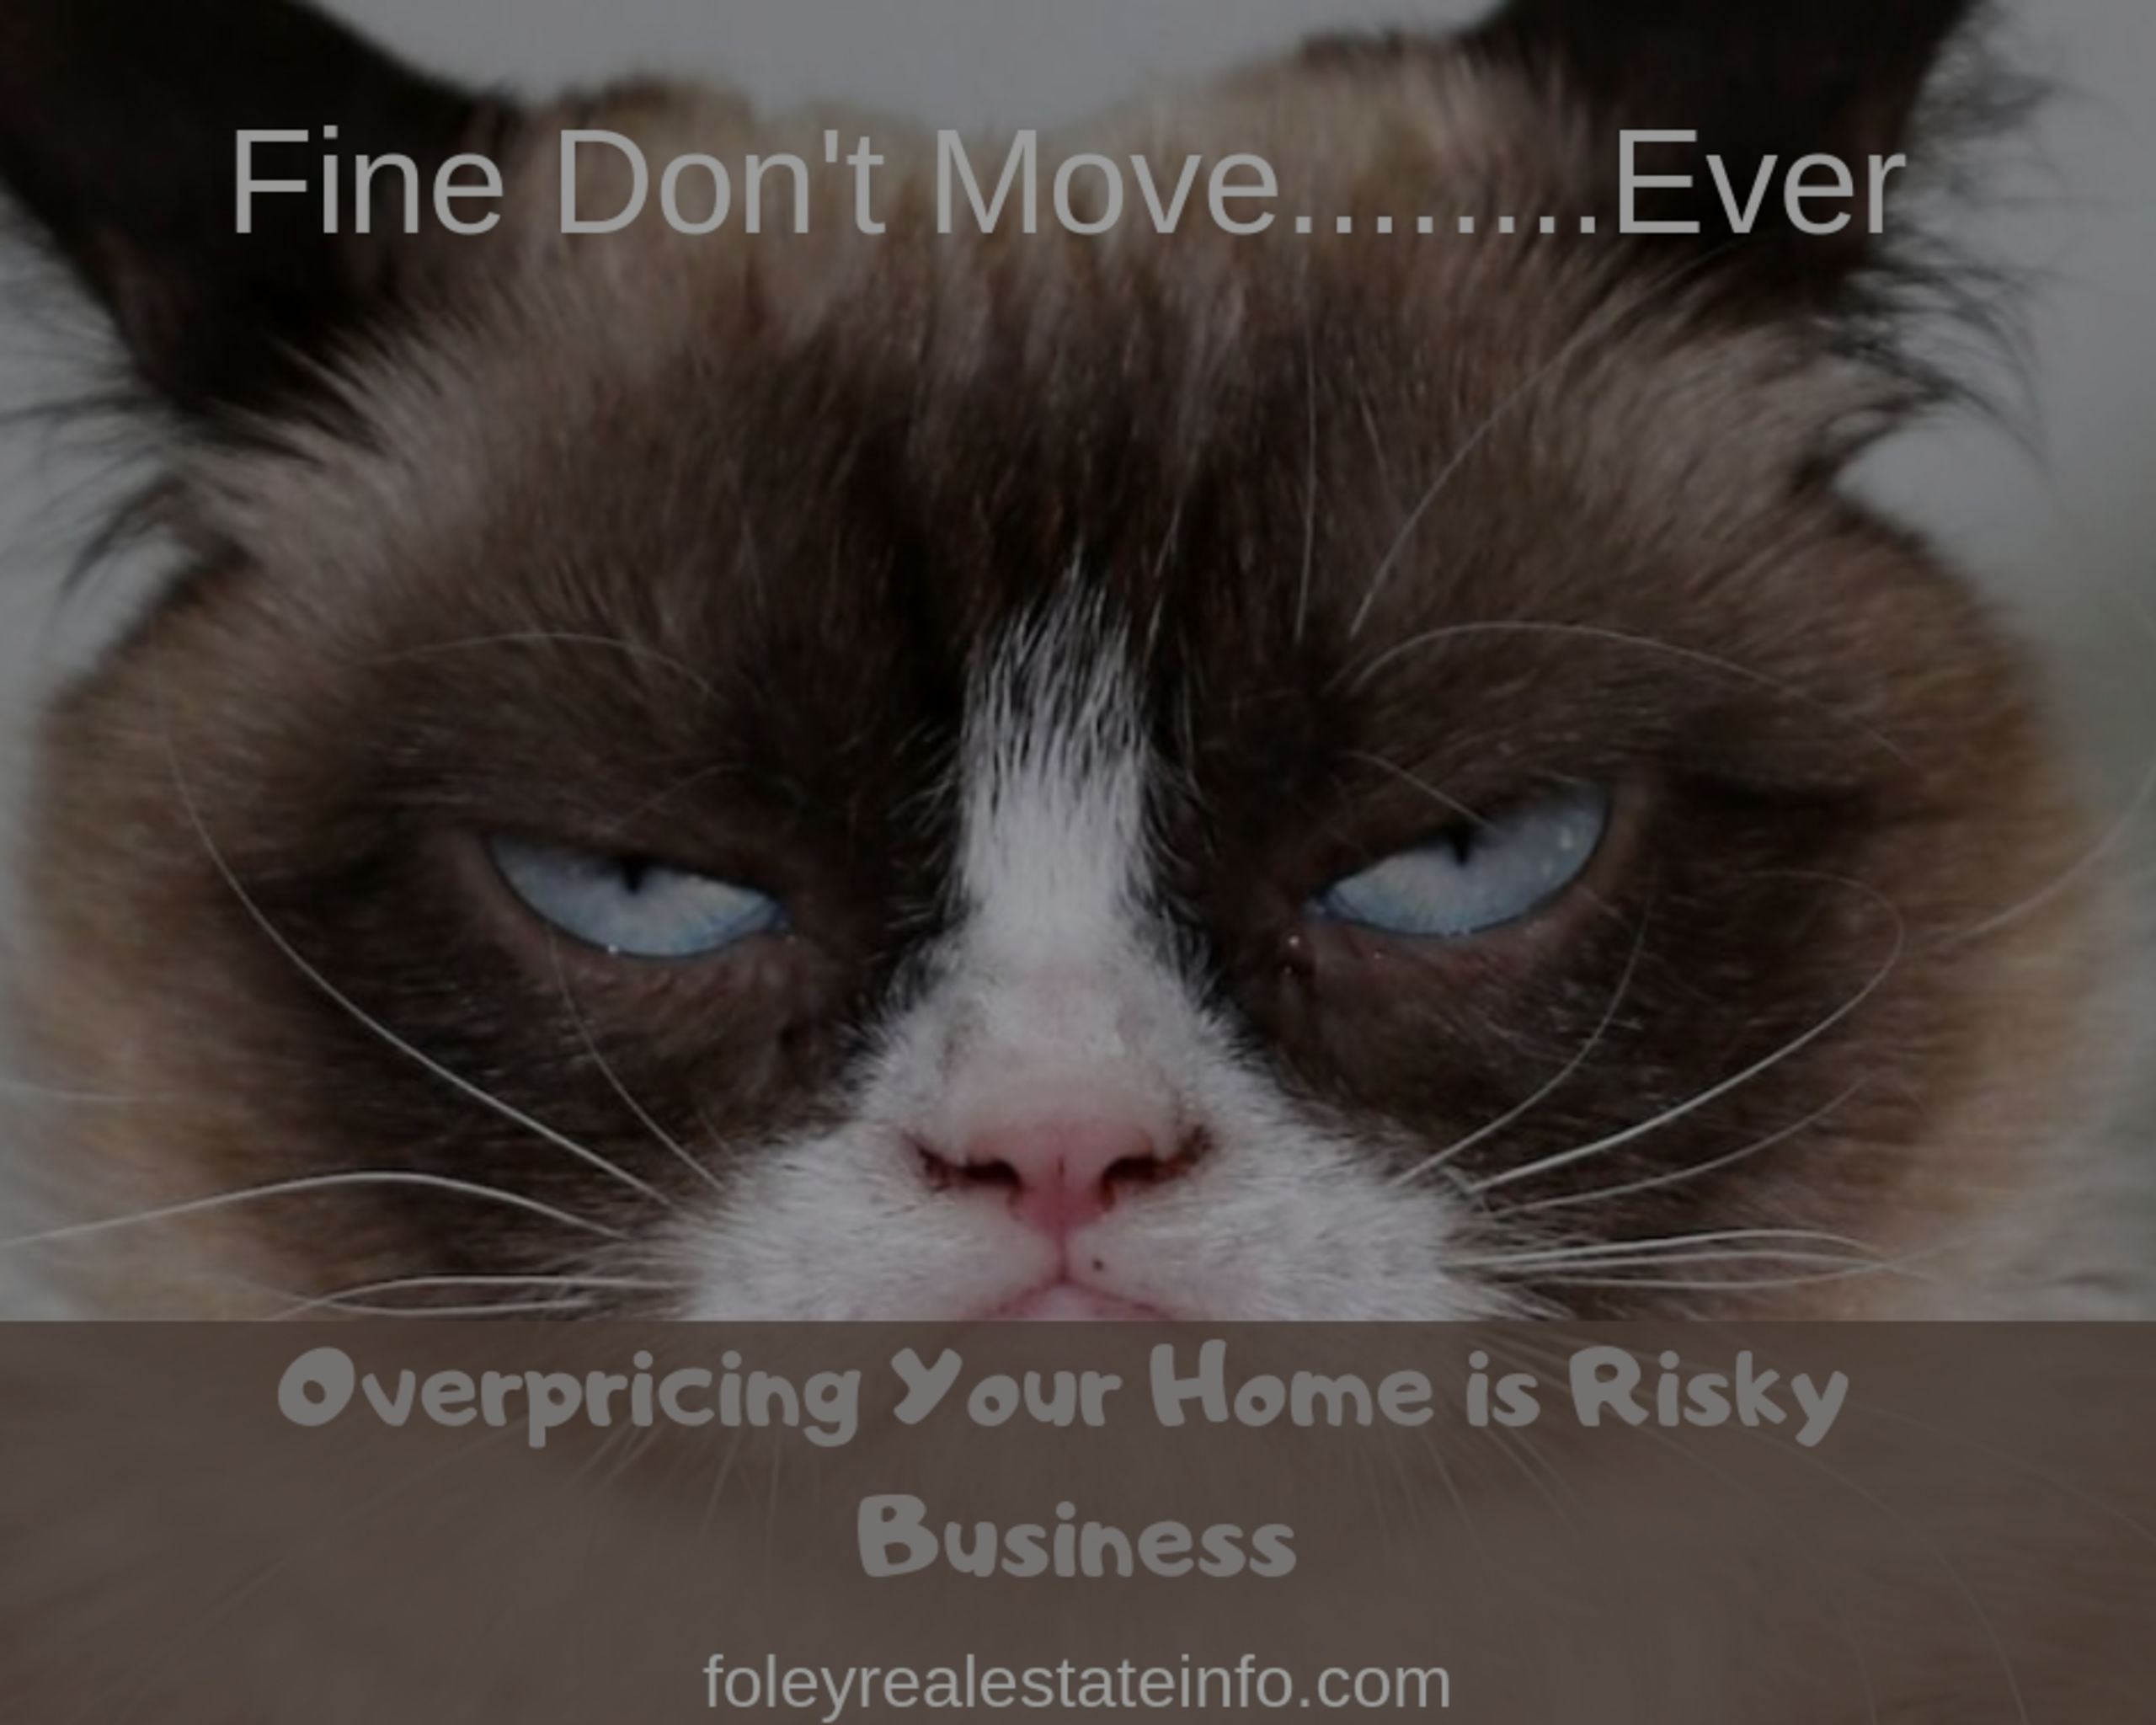 Overpricing Your Home is Risky Business